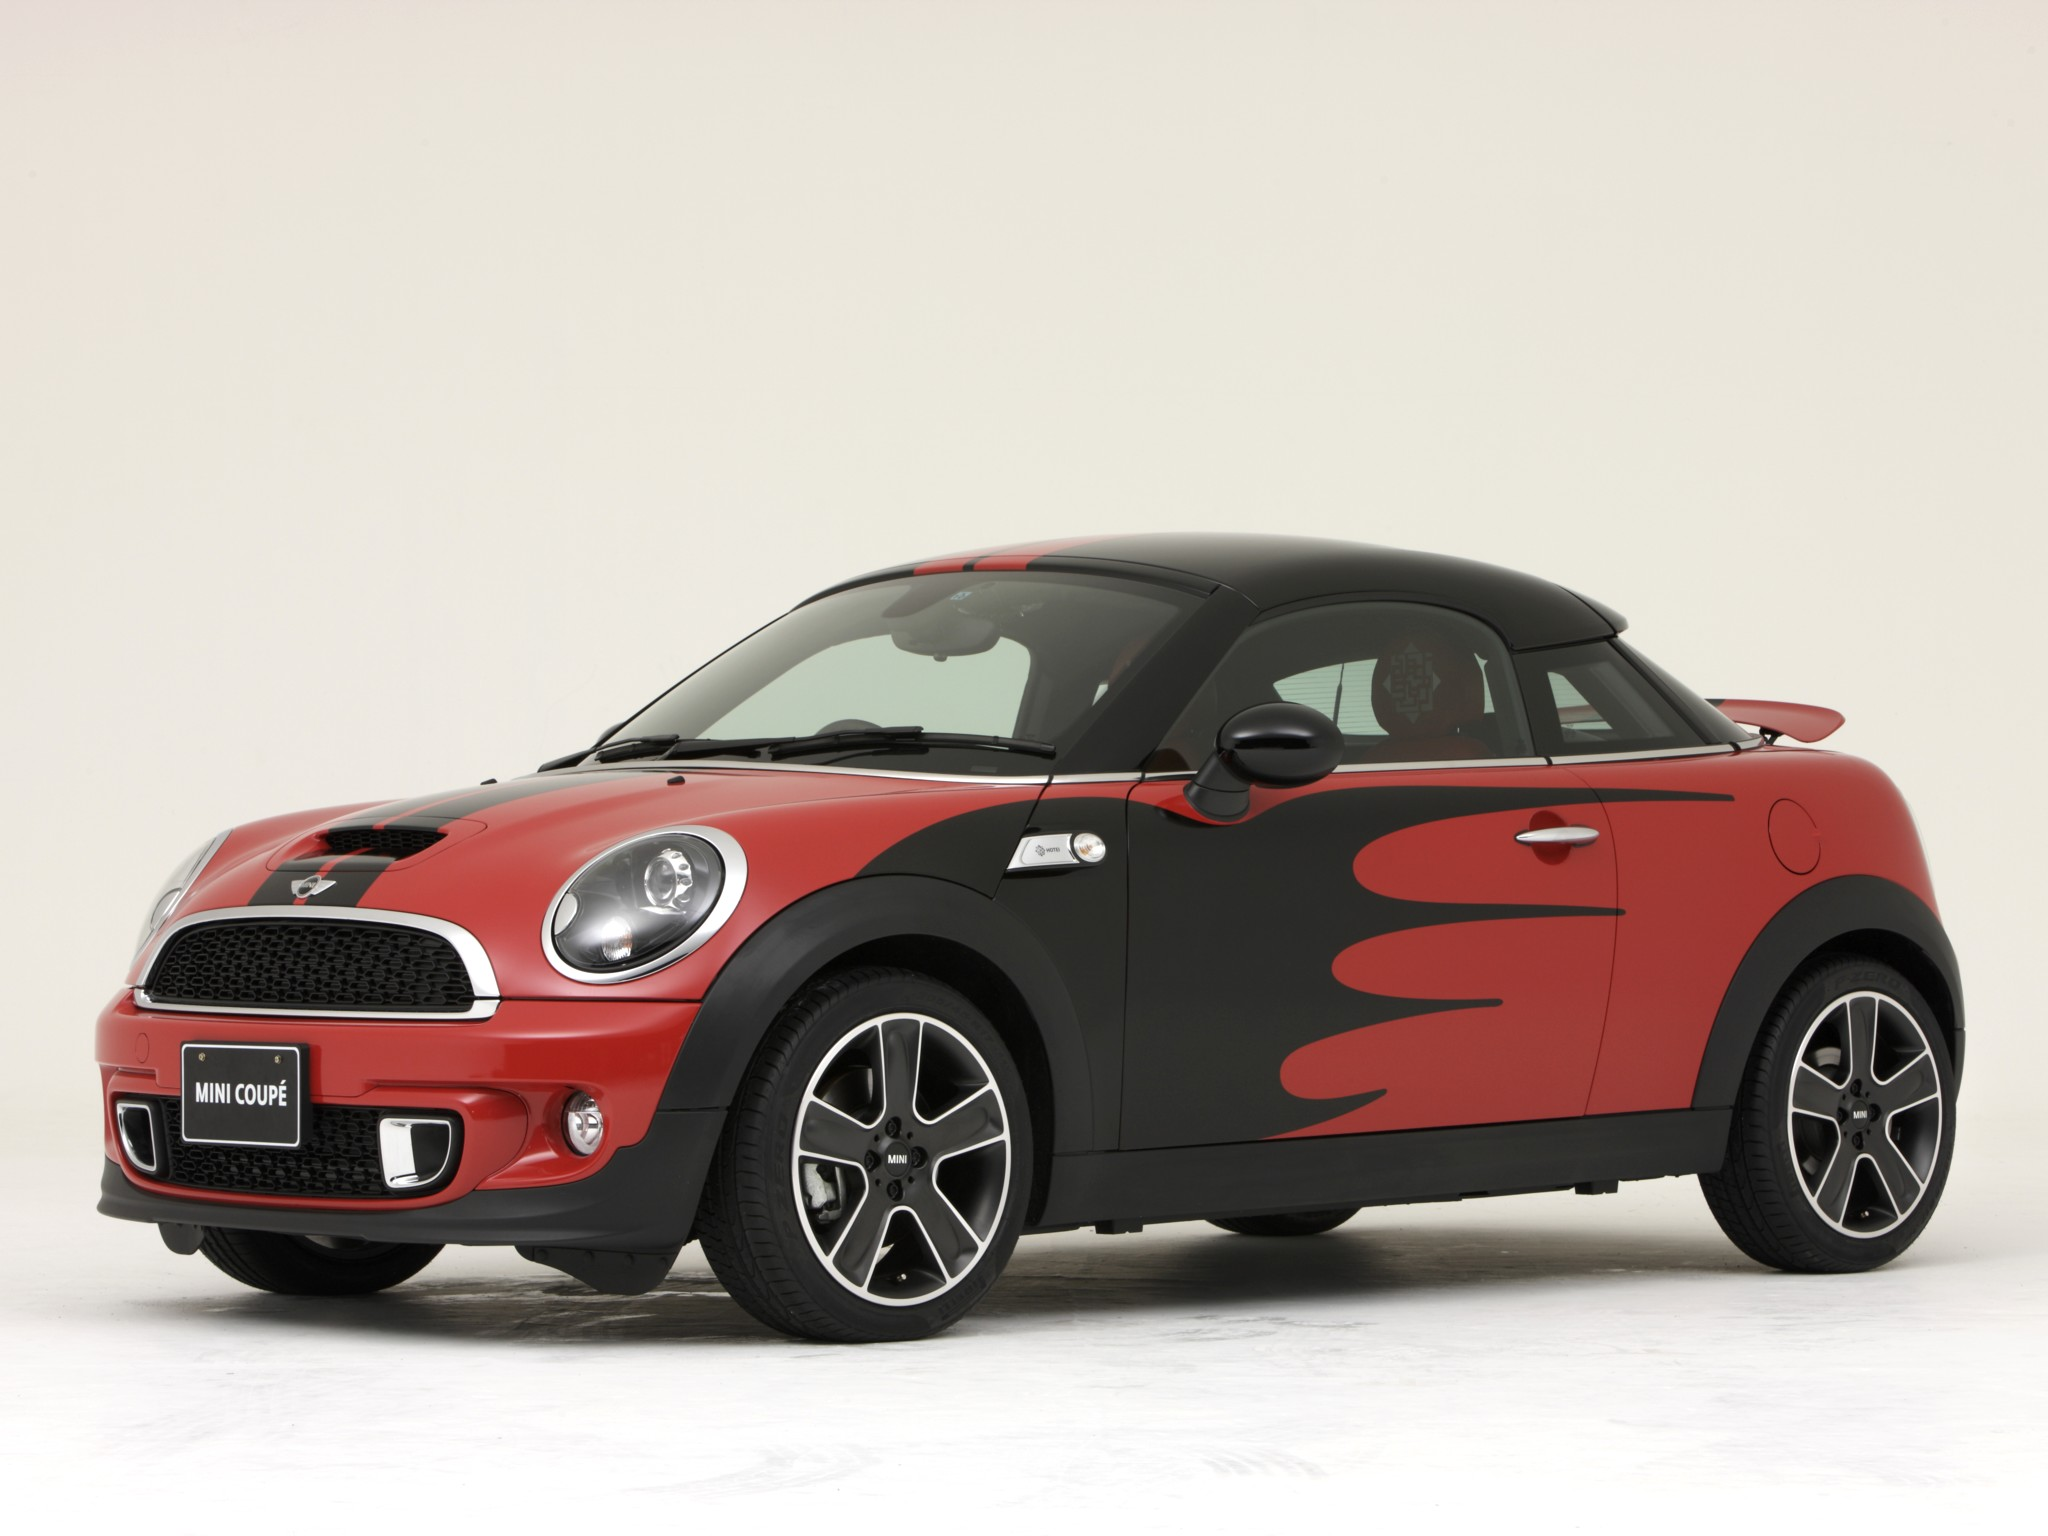 mini cooper s coupe photos photogallery with 7 pics. Black Bedroom Furniture Sets. Home Design Ideas